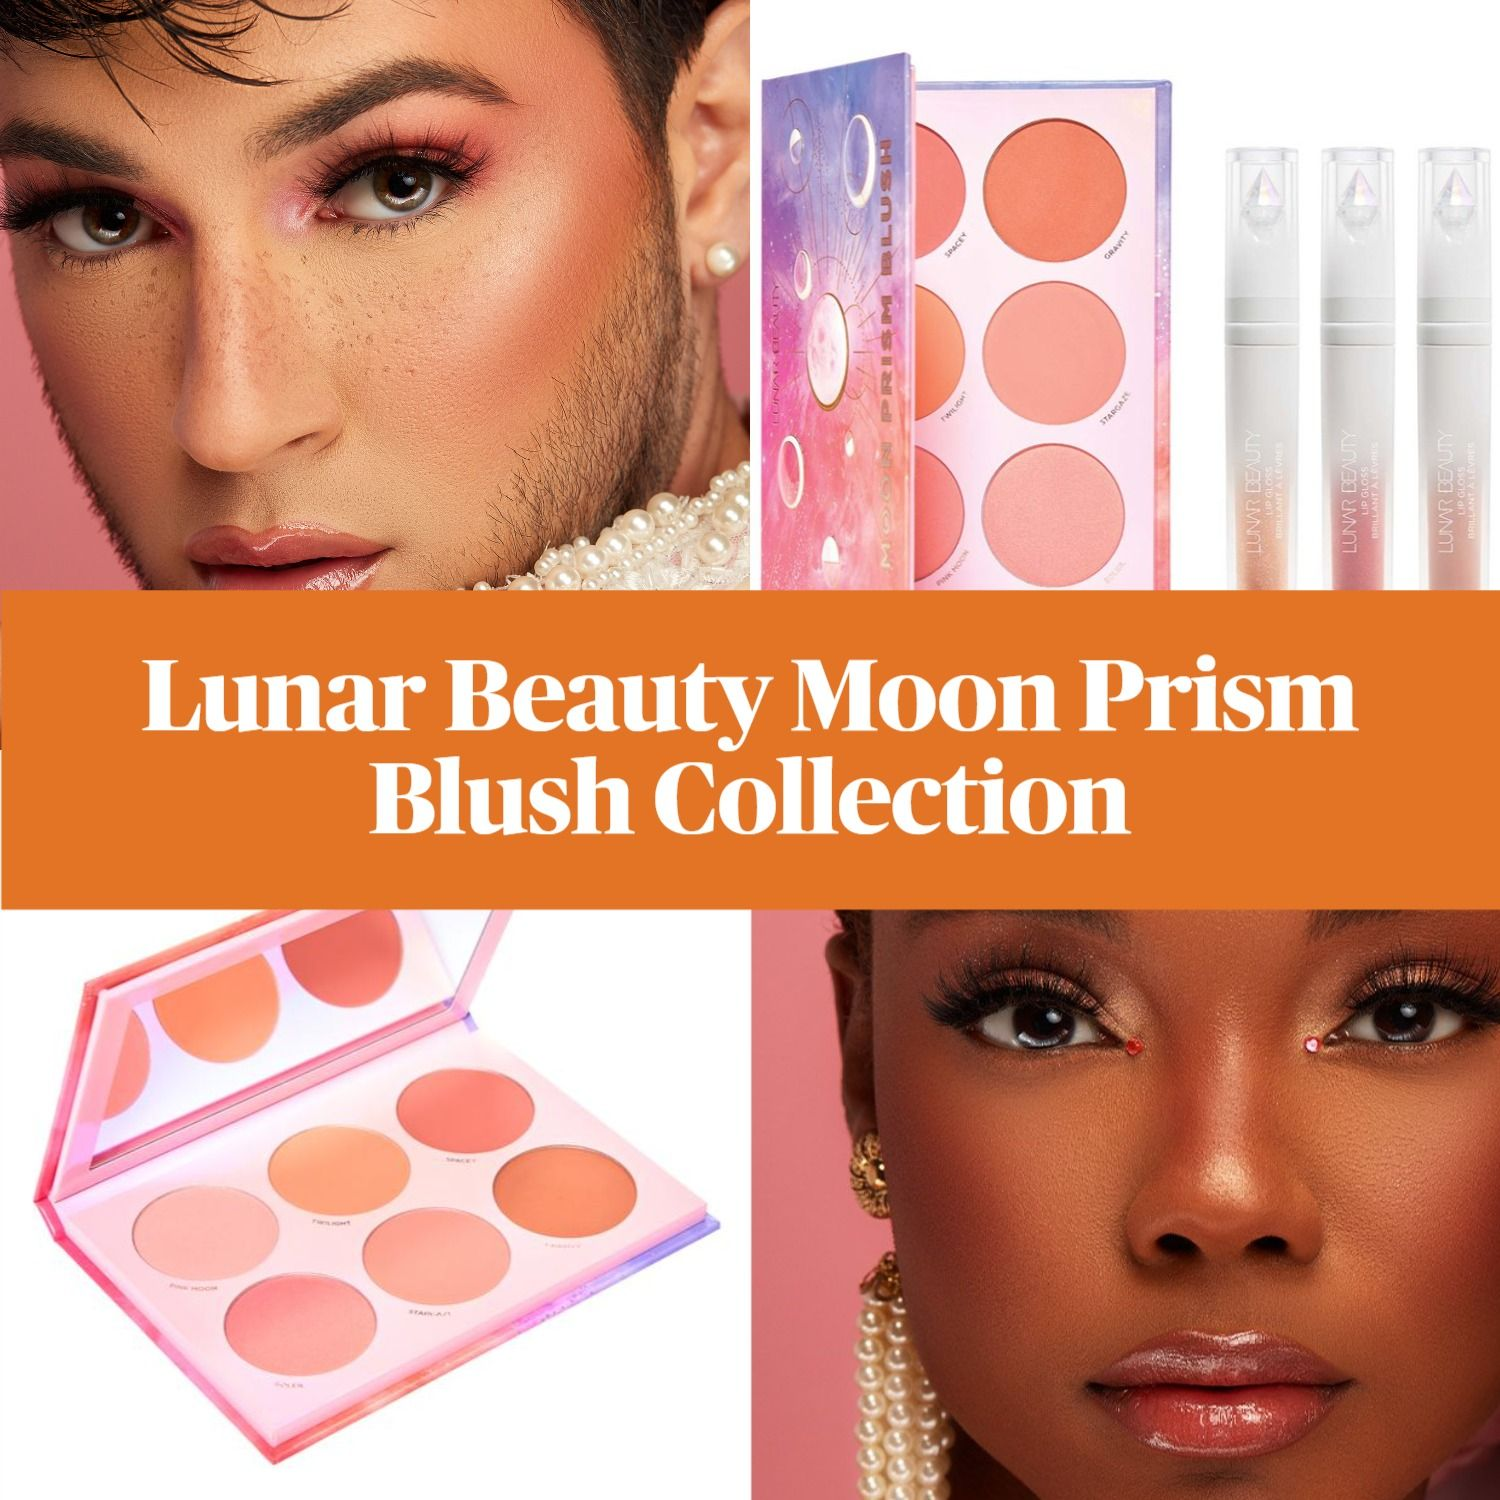 Get The Scoop On The New Lunar Beauty Moon Prism Collection